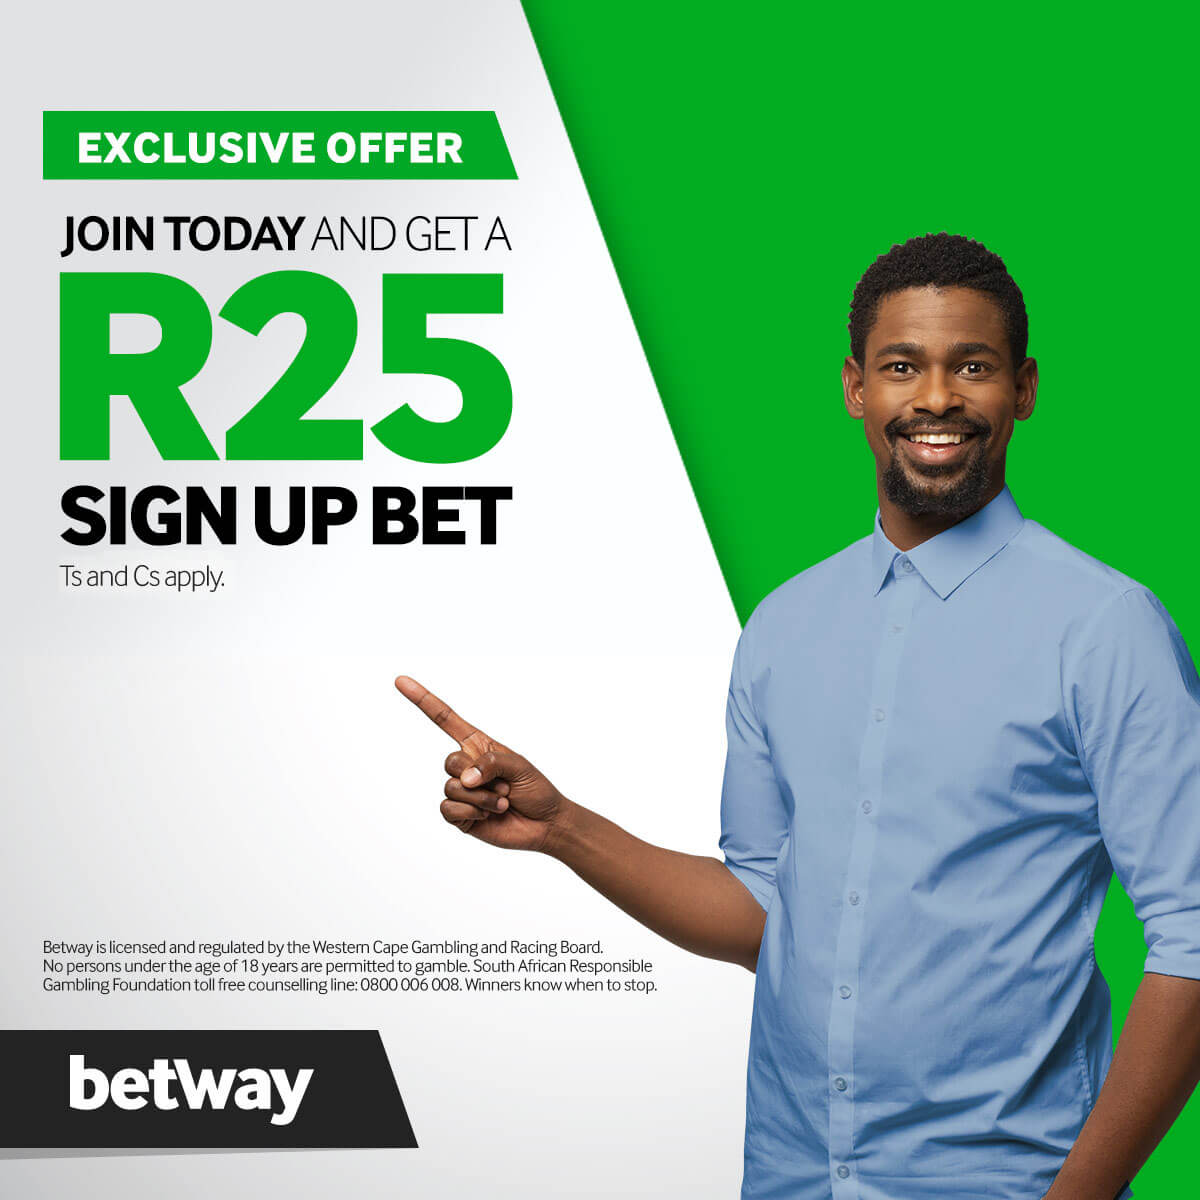 R25 Sign Up Bet